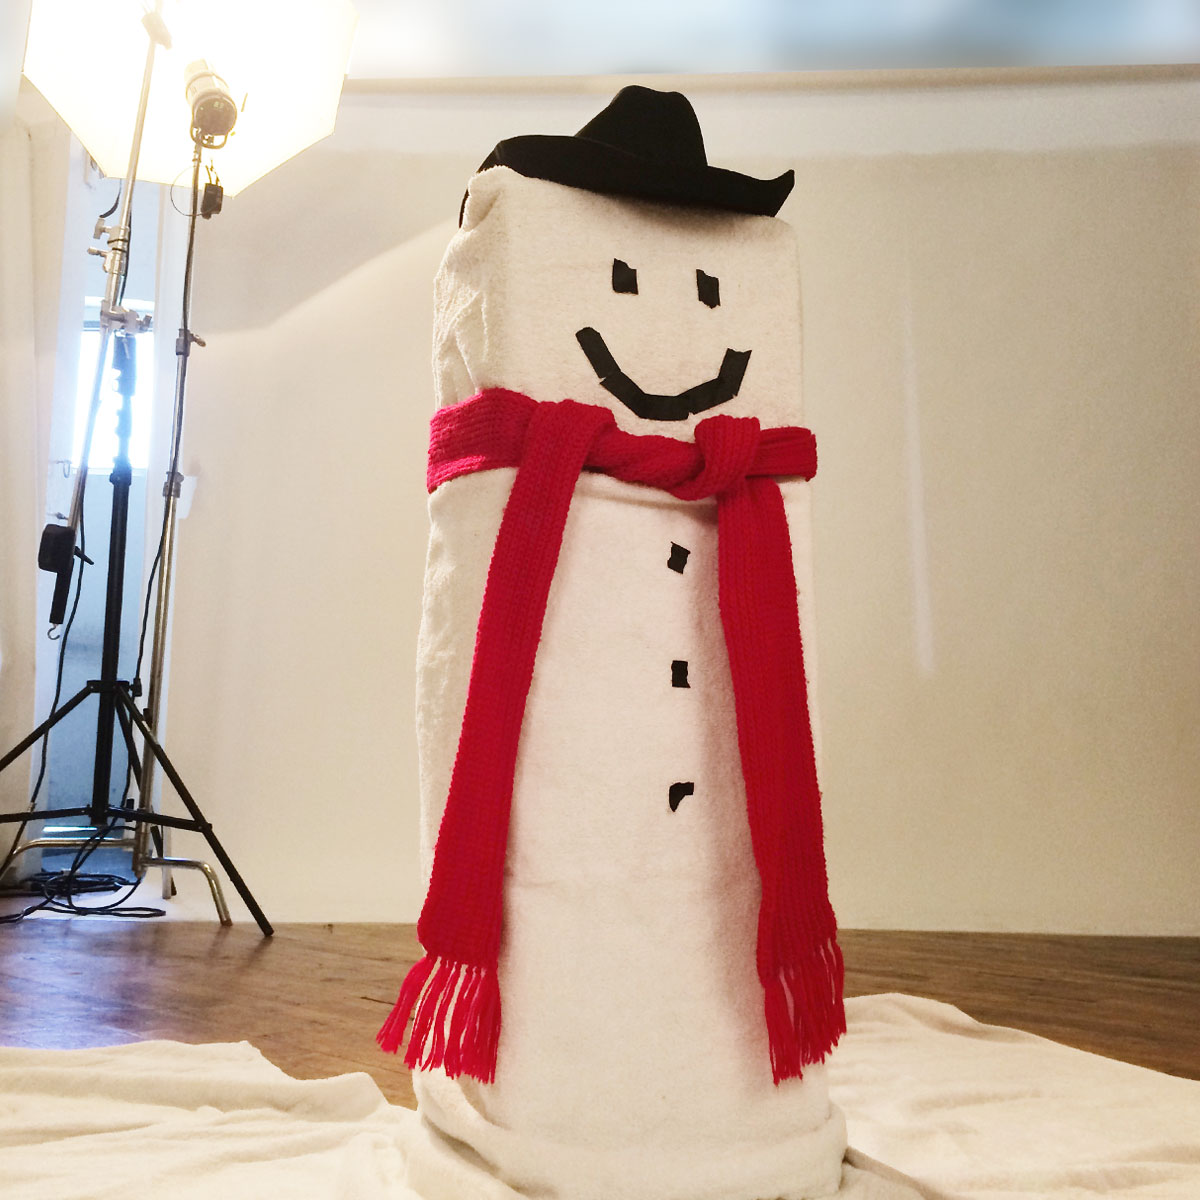 A quickie snowman I built for a model to act with on set (to be replaced by a stock photo of a proper snowman later)...